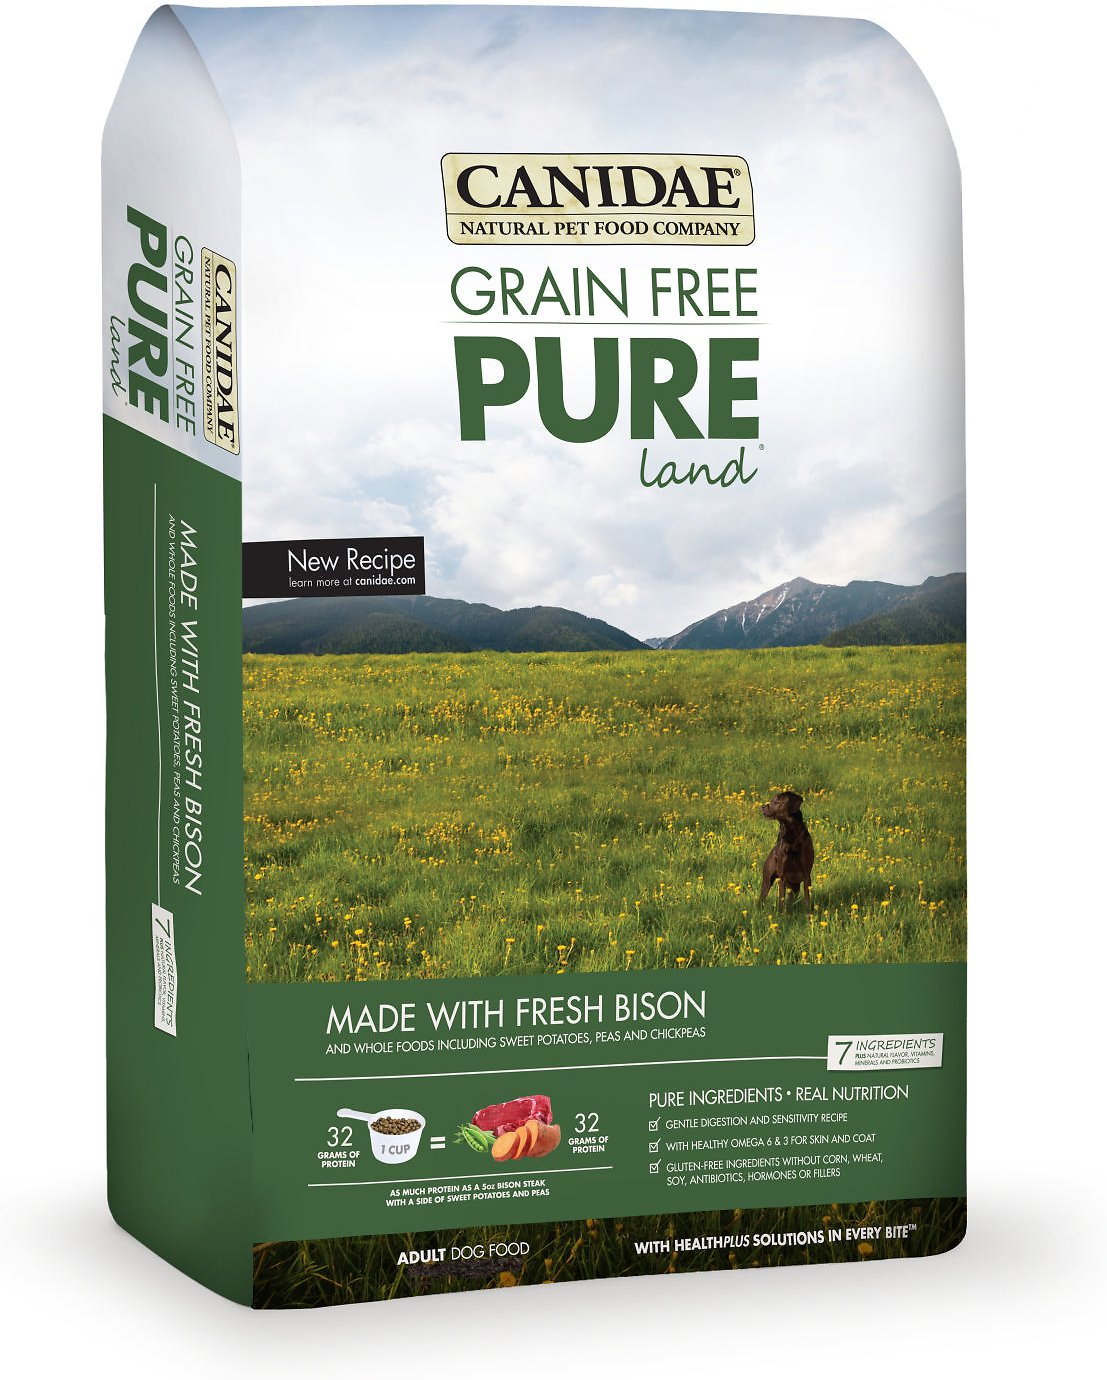 Canidae Grain-Free PURE Land Bison Dog Food Review